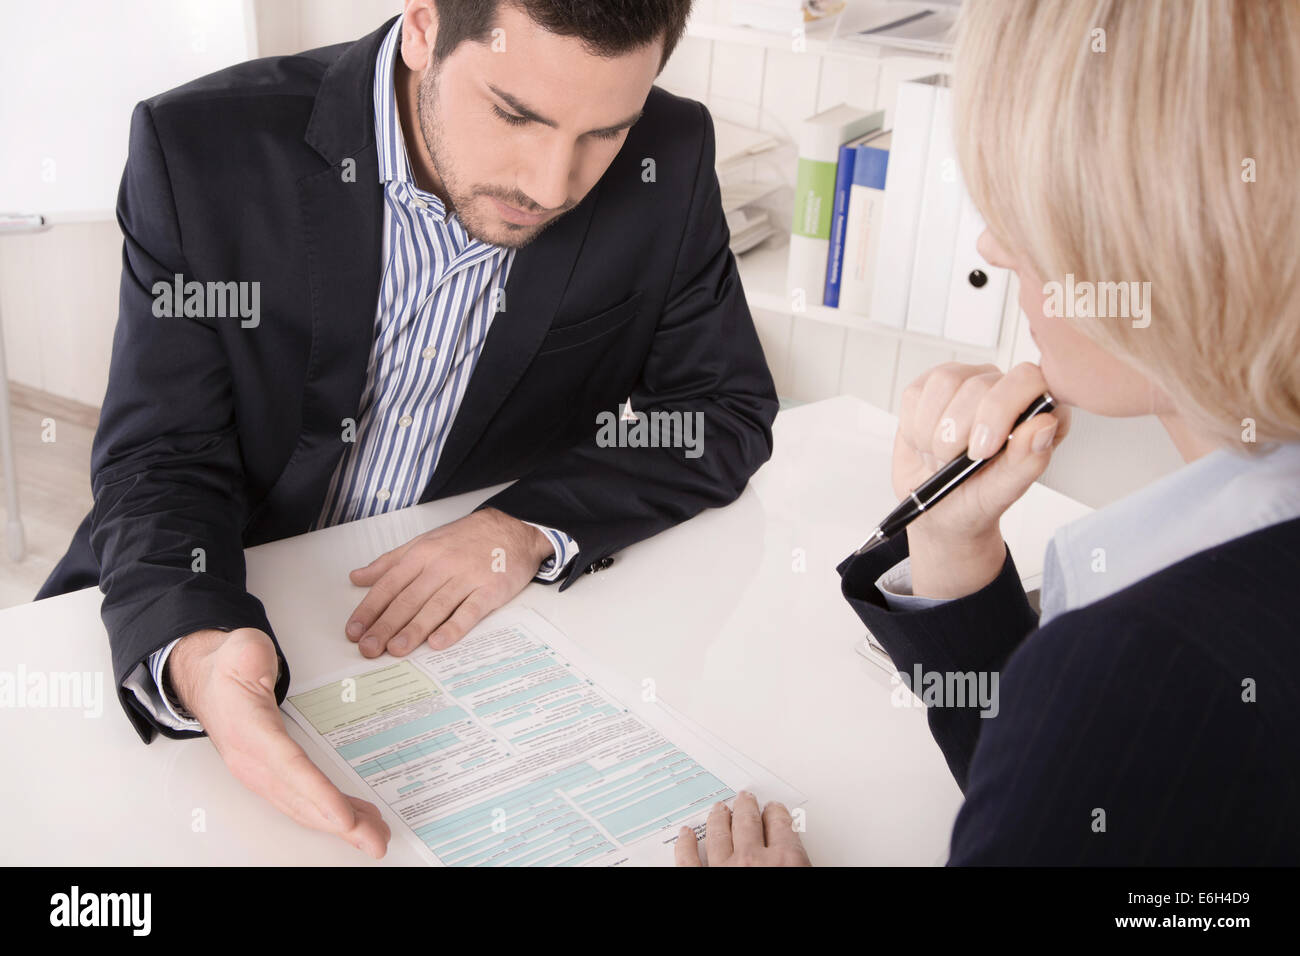 Adviser sitting in a meeting with a blank on the table explaining something his colleague. - Stock Image